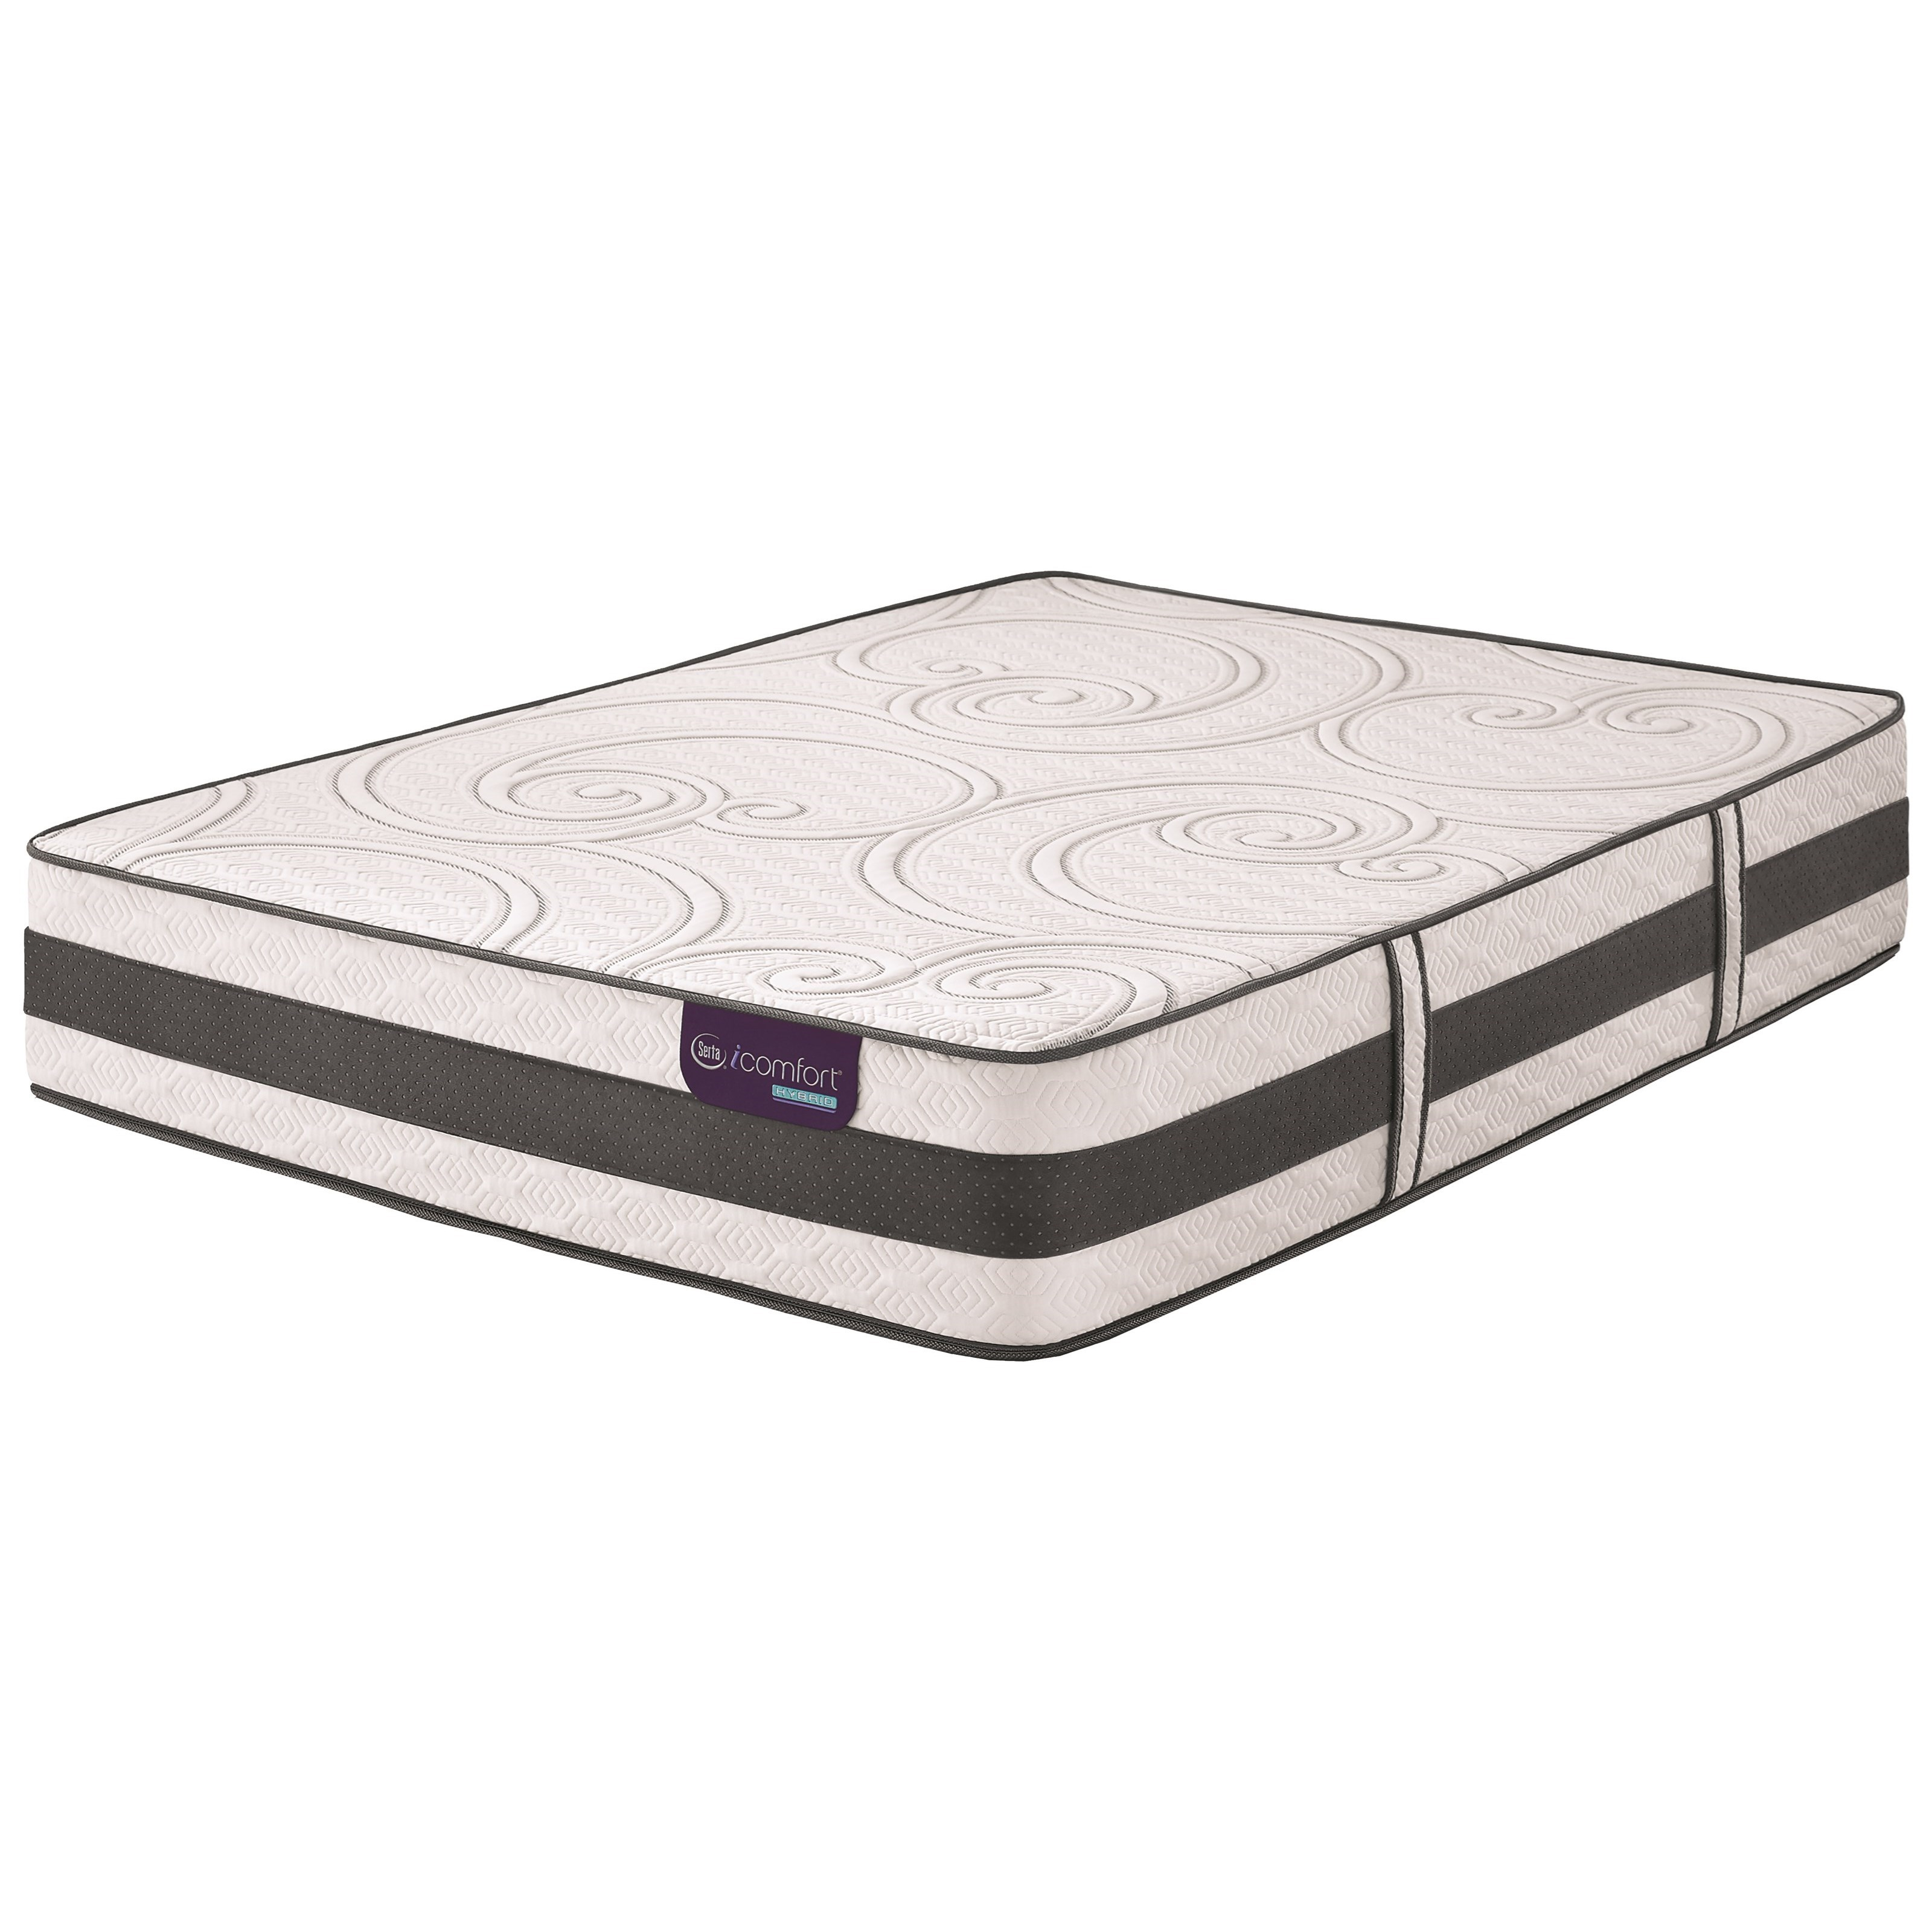 Serta iComfort Hybrid Discoverer Split King Plush Hybrid Mattress - Item Number: DiscovererPlsh-TXLK